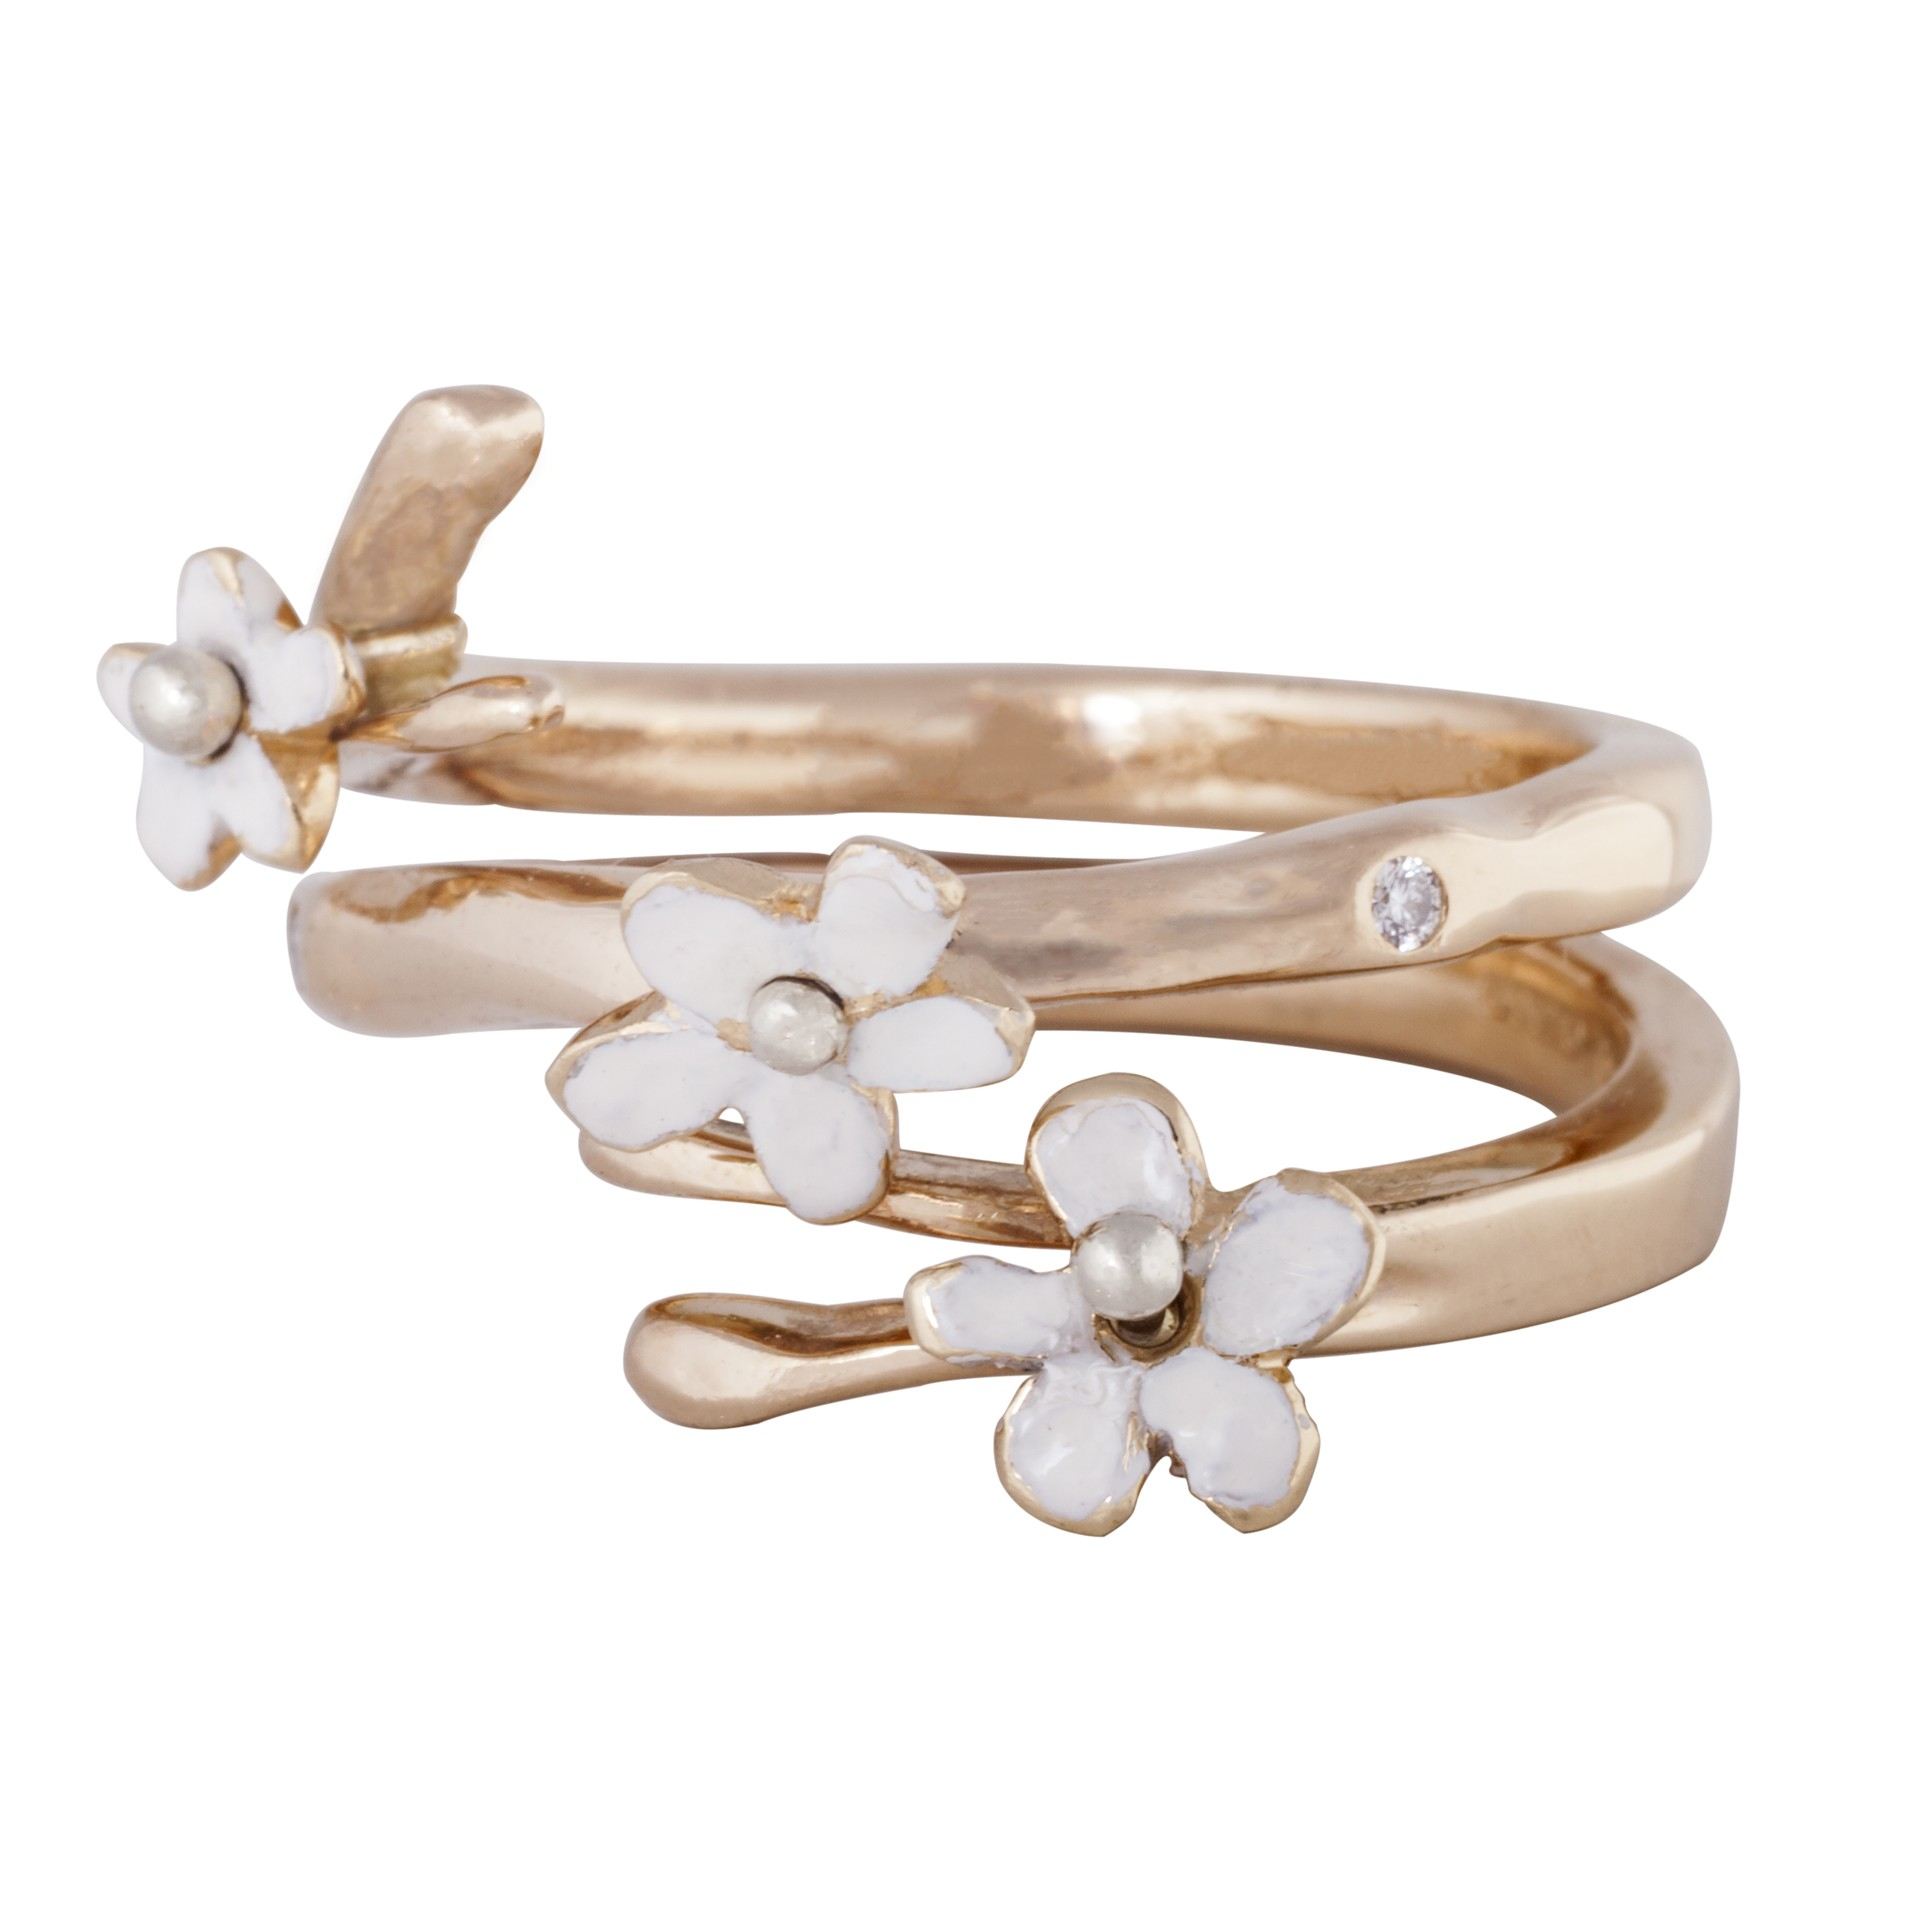 'Forget me not' 14ct gold diamond ring